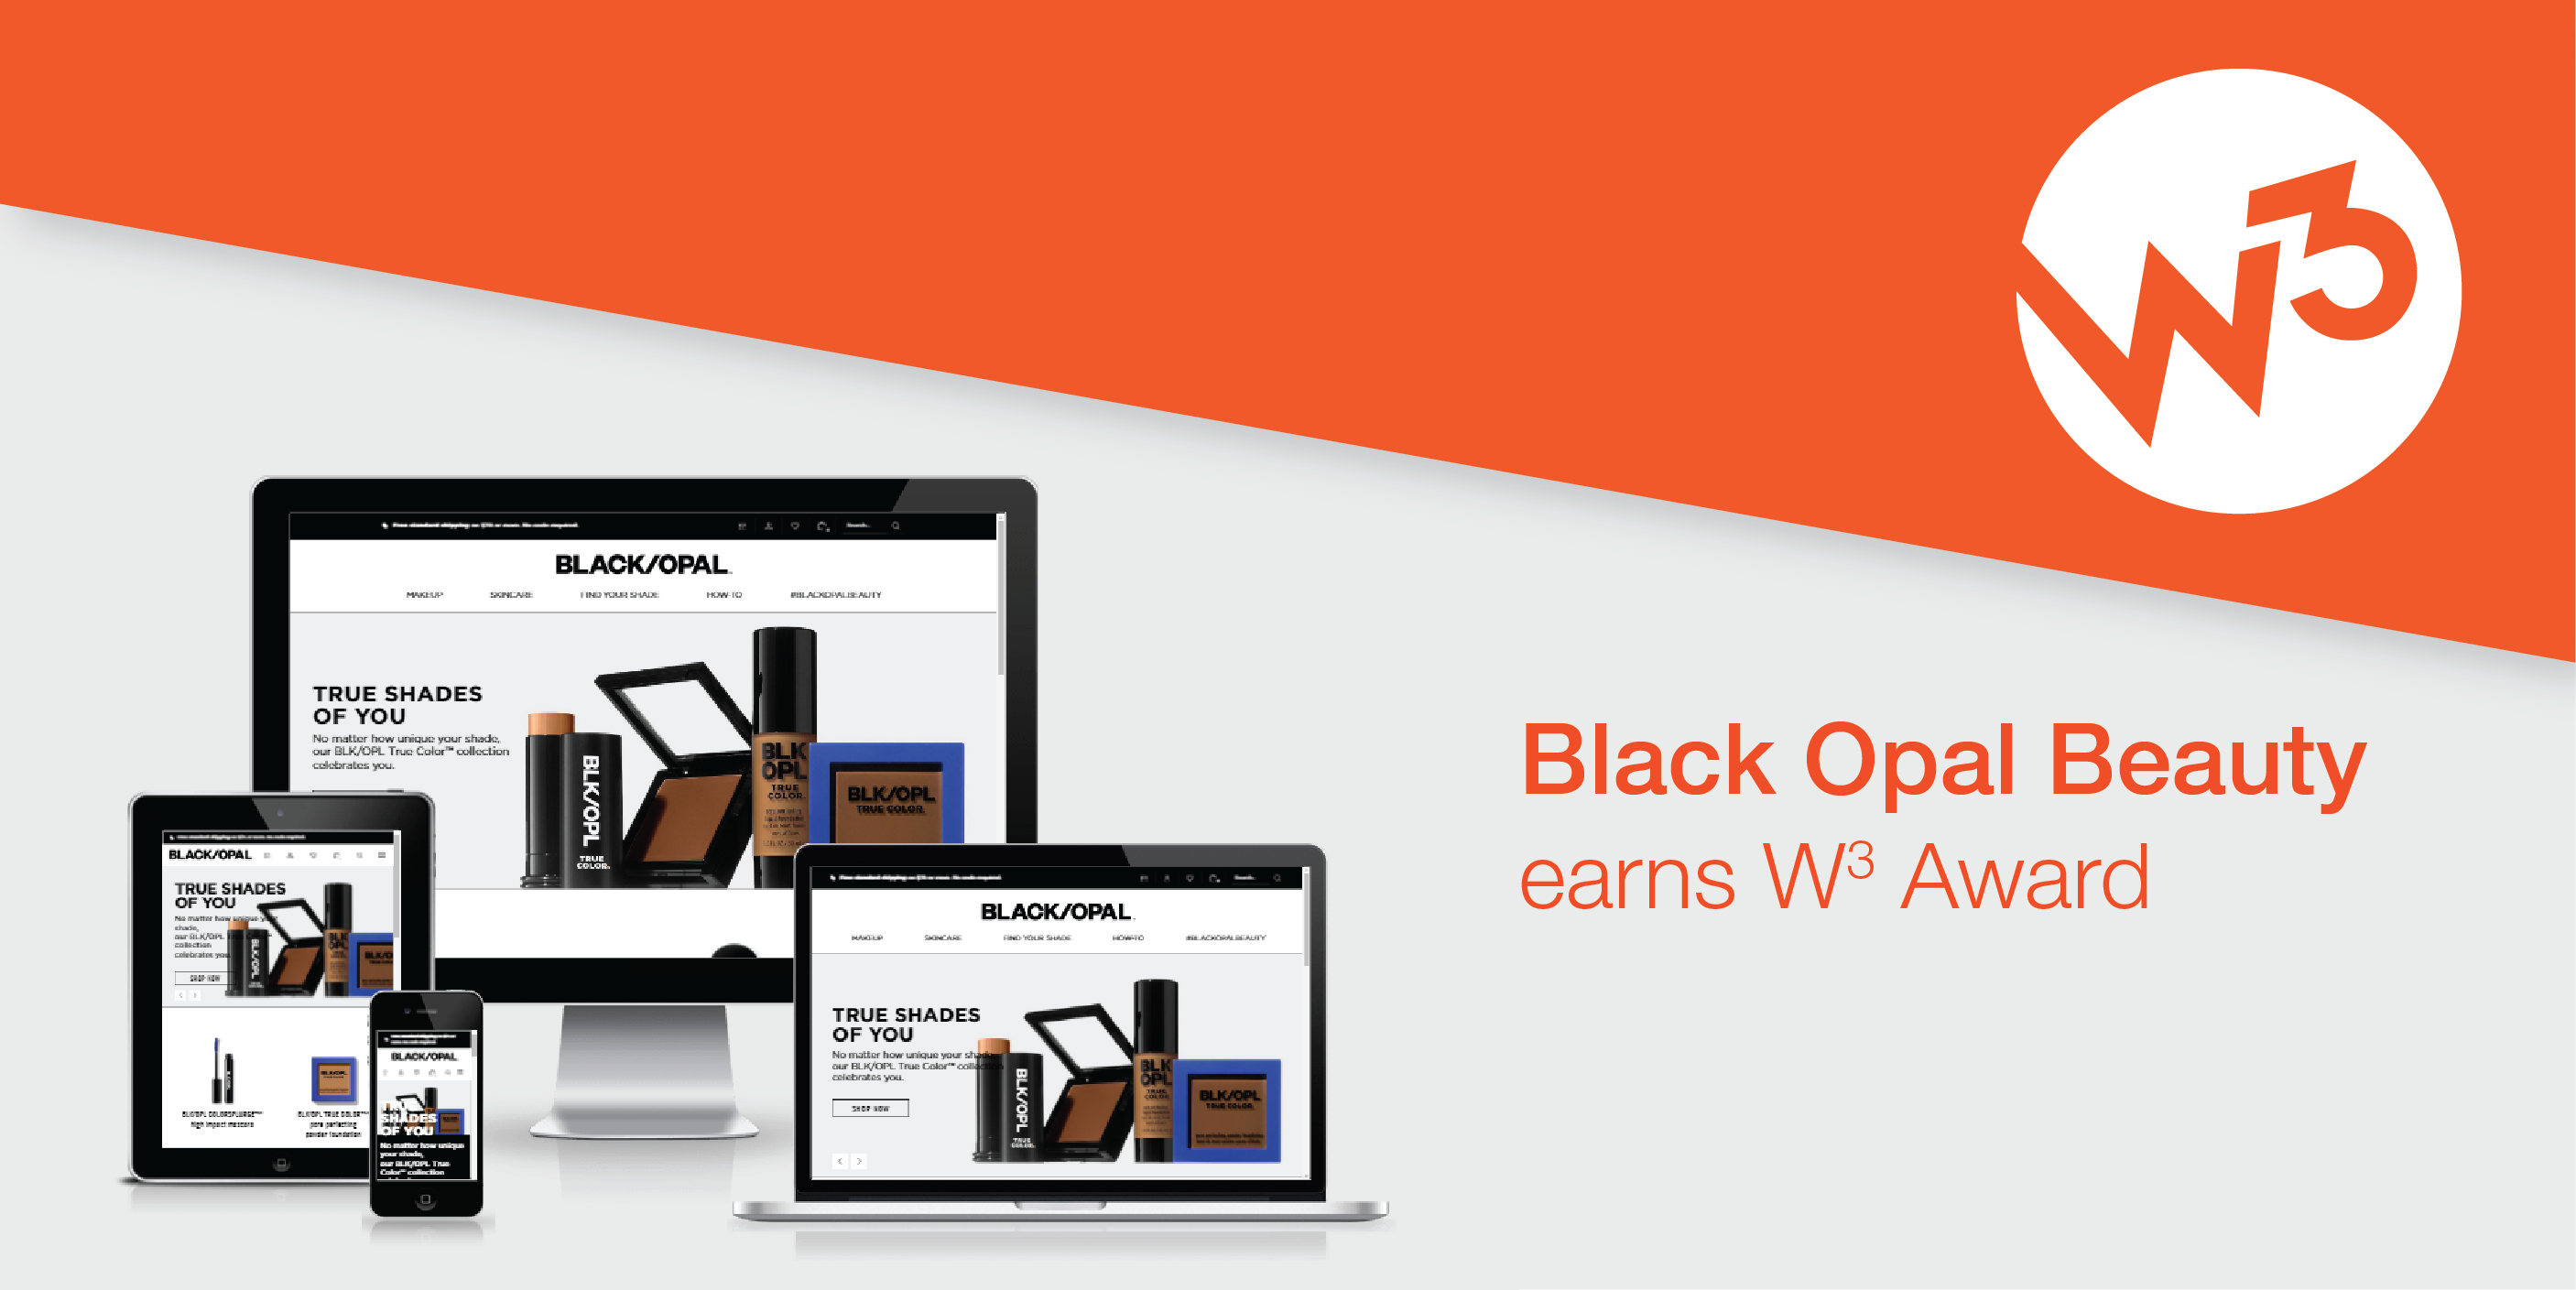 Black Opal website homepage displayed on various devices.